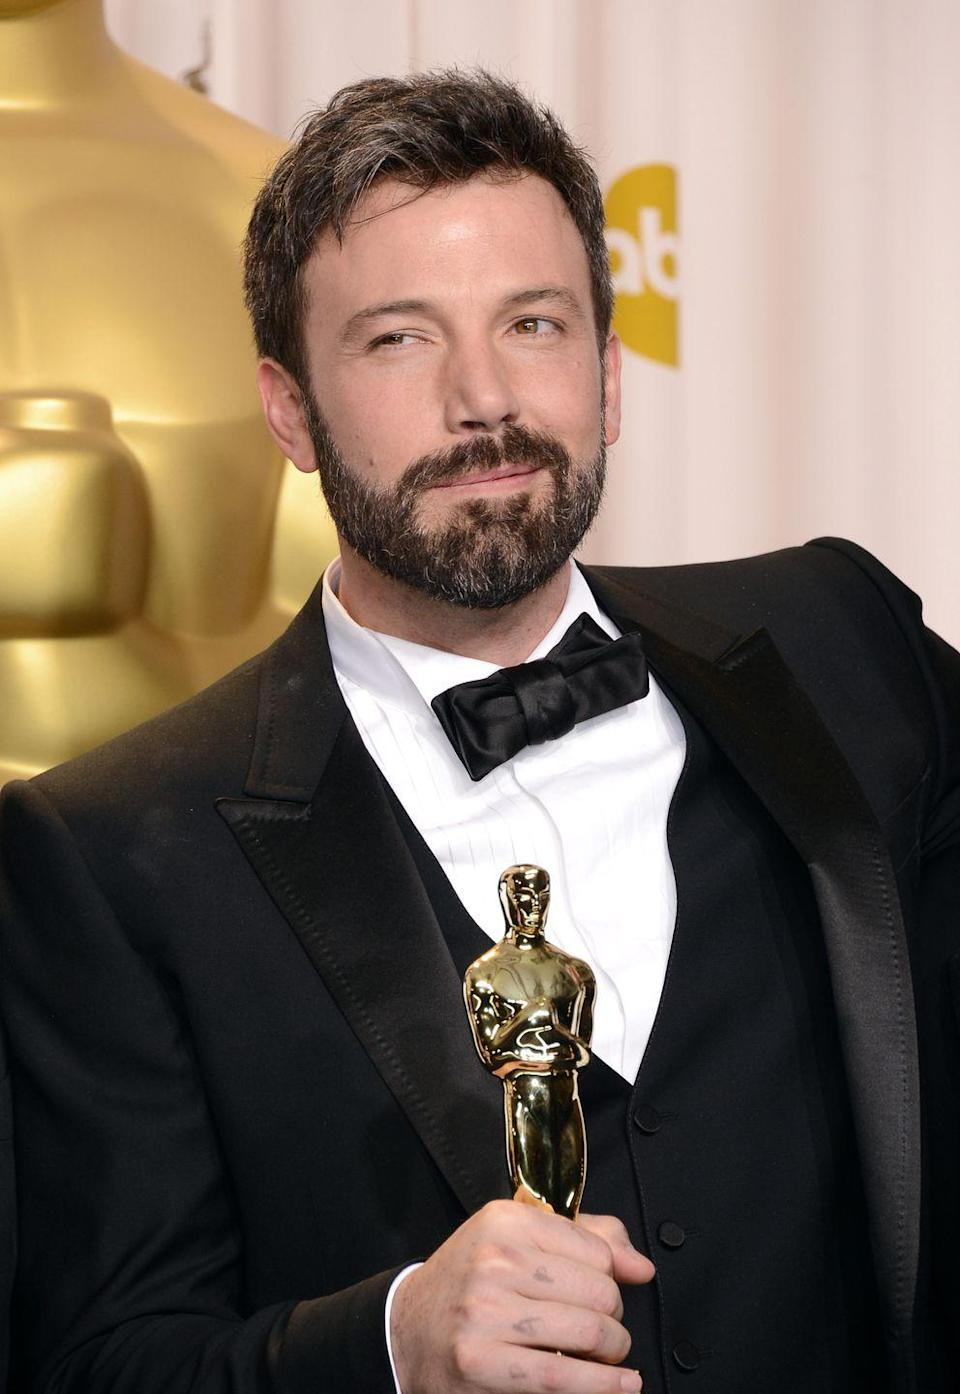 <p>Ben Affleck transitioned to the director's chair in 2010, making his directorial debut with <em>The Town</em>. Four years later, he took home an award for Best Director at the Golden Globes for <em>Argo </em>— a film he both starred in and directed.</p>